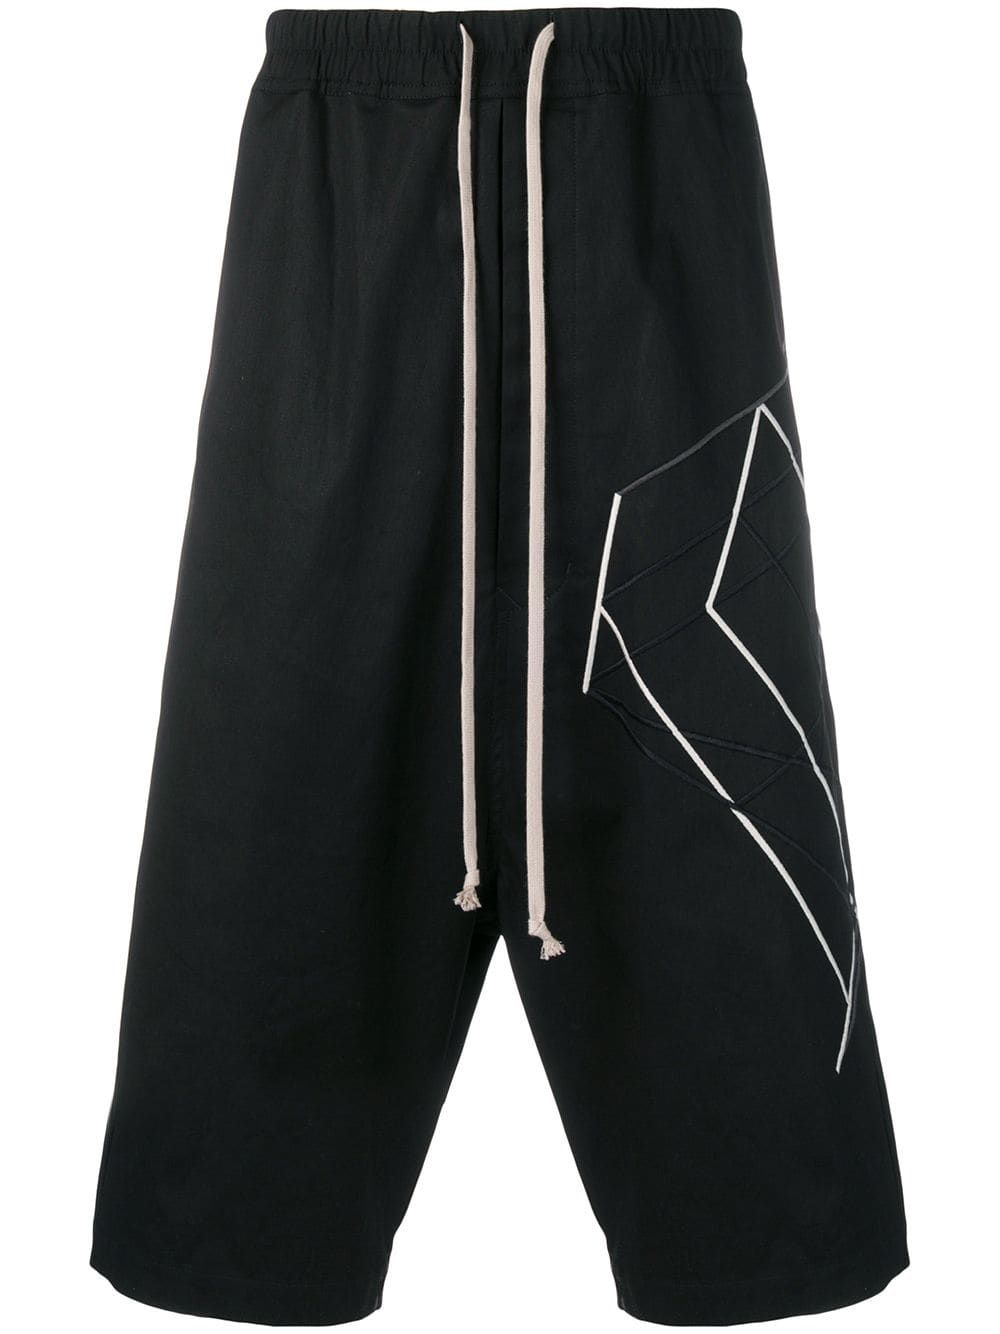 65d9523374 RICK OWENS RICK OWENS GEOMETRIC SHAPE LONG SHORTS - BLACK. #rickowens #cloth